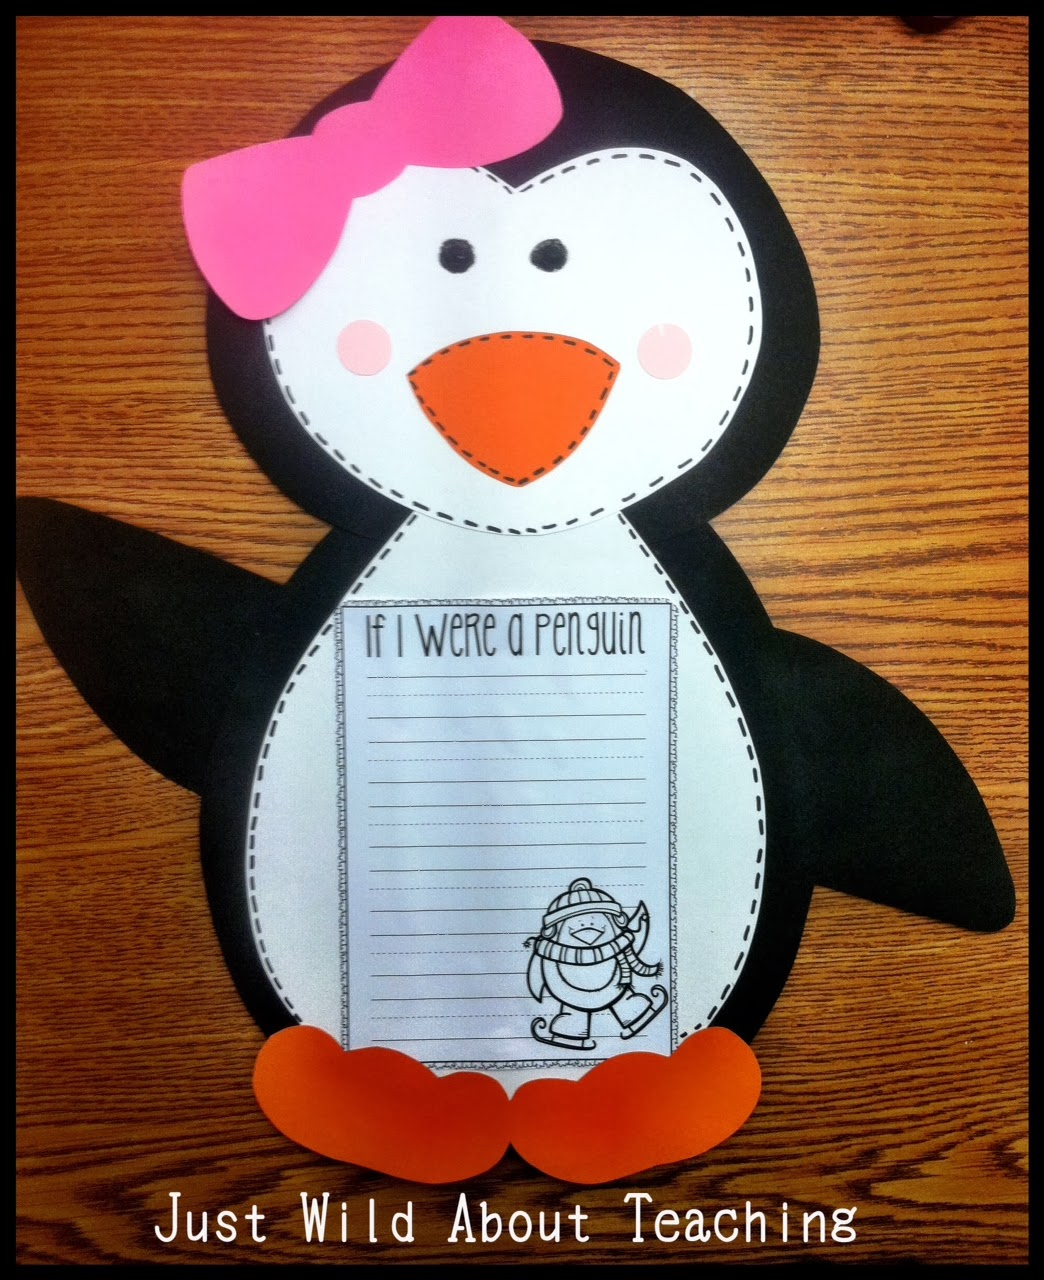 Just Wild About Teaching Playful Penguins